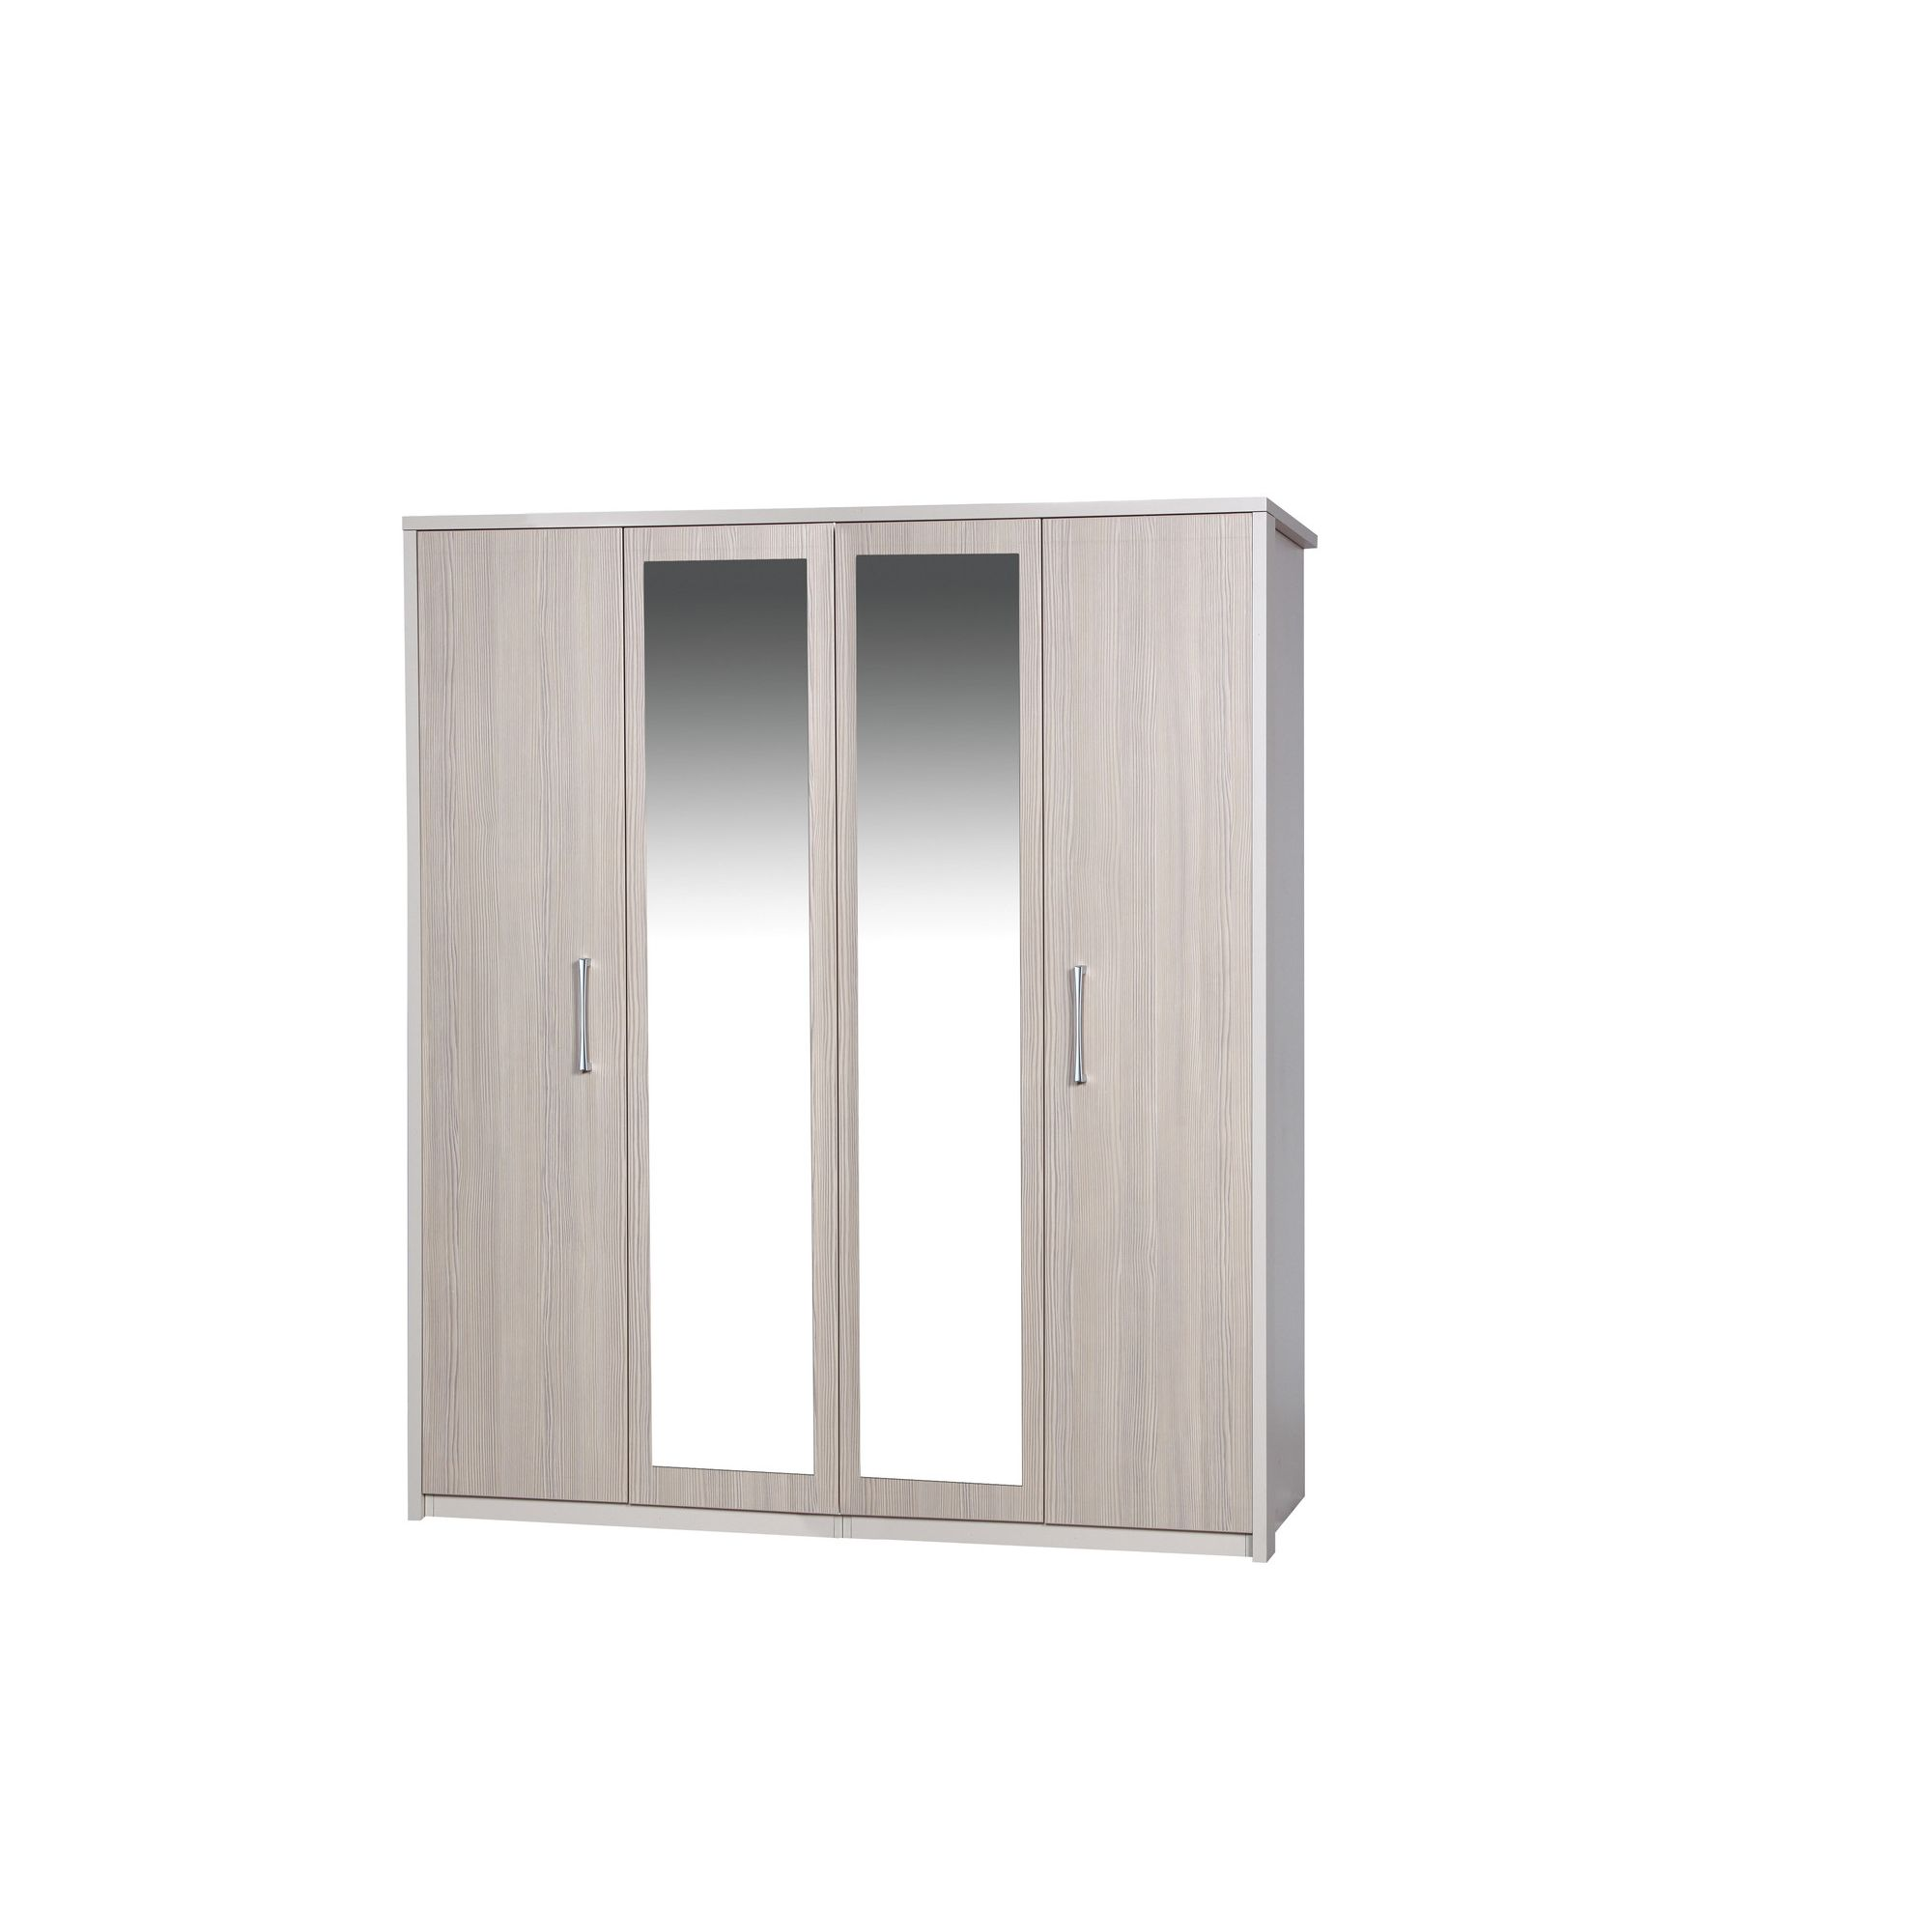 Alto Furniture Avola 4 Door Wardrobe with Mirror - Cream Carcass With Champagne Avola at Tesco Direct